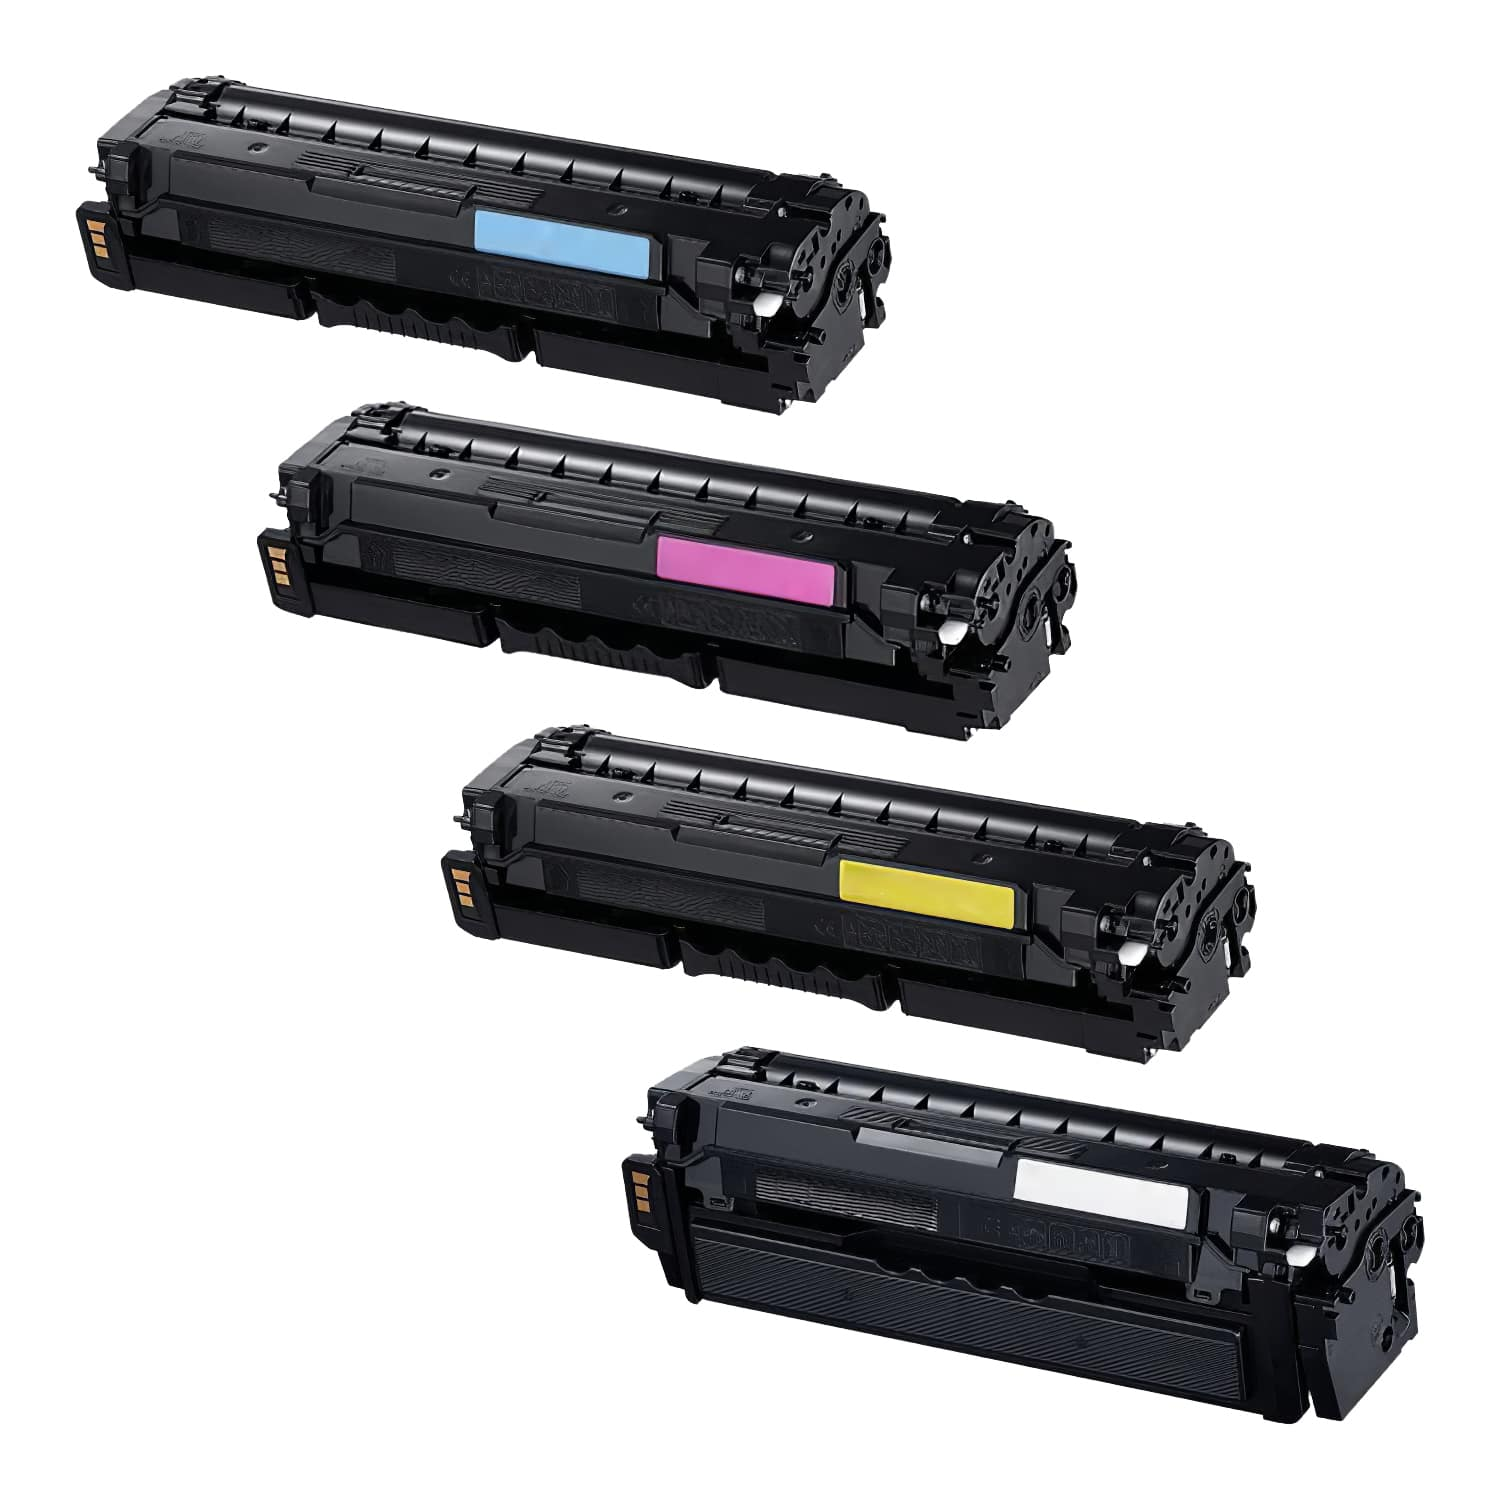 Remanufactured Samsung 503L Toner High Capacity Pack - 4 Cartridges